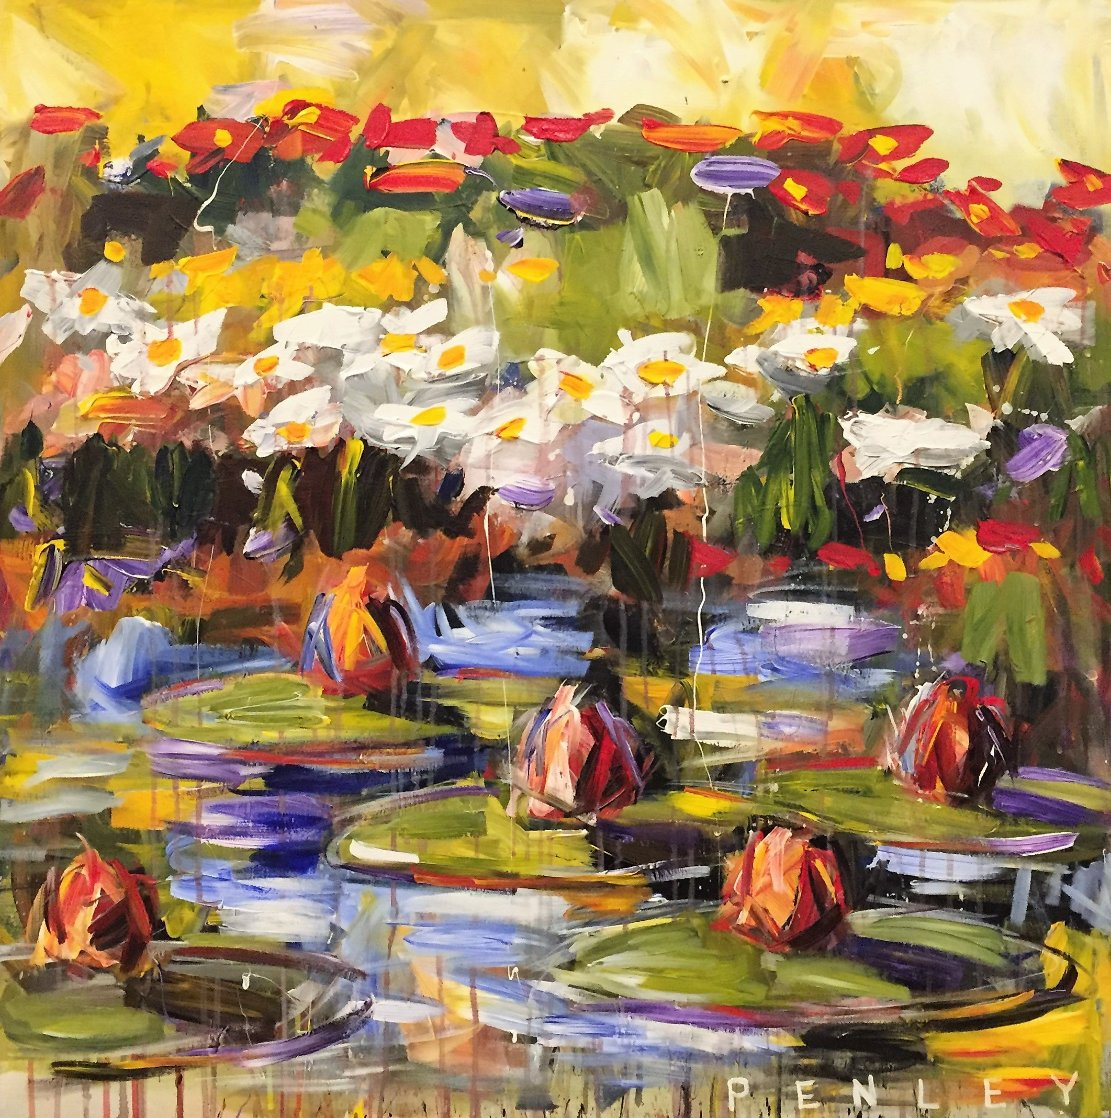 Lily Pads 2000 36x36 Original Painting by Steve Penley